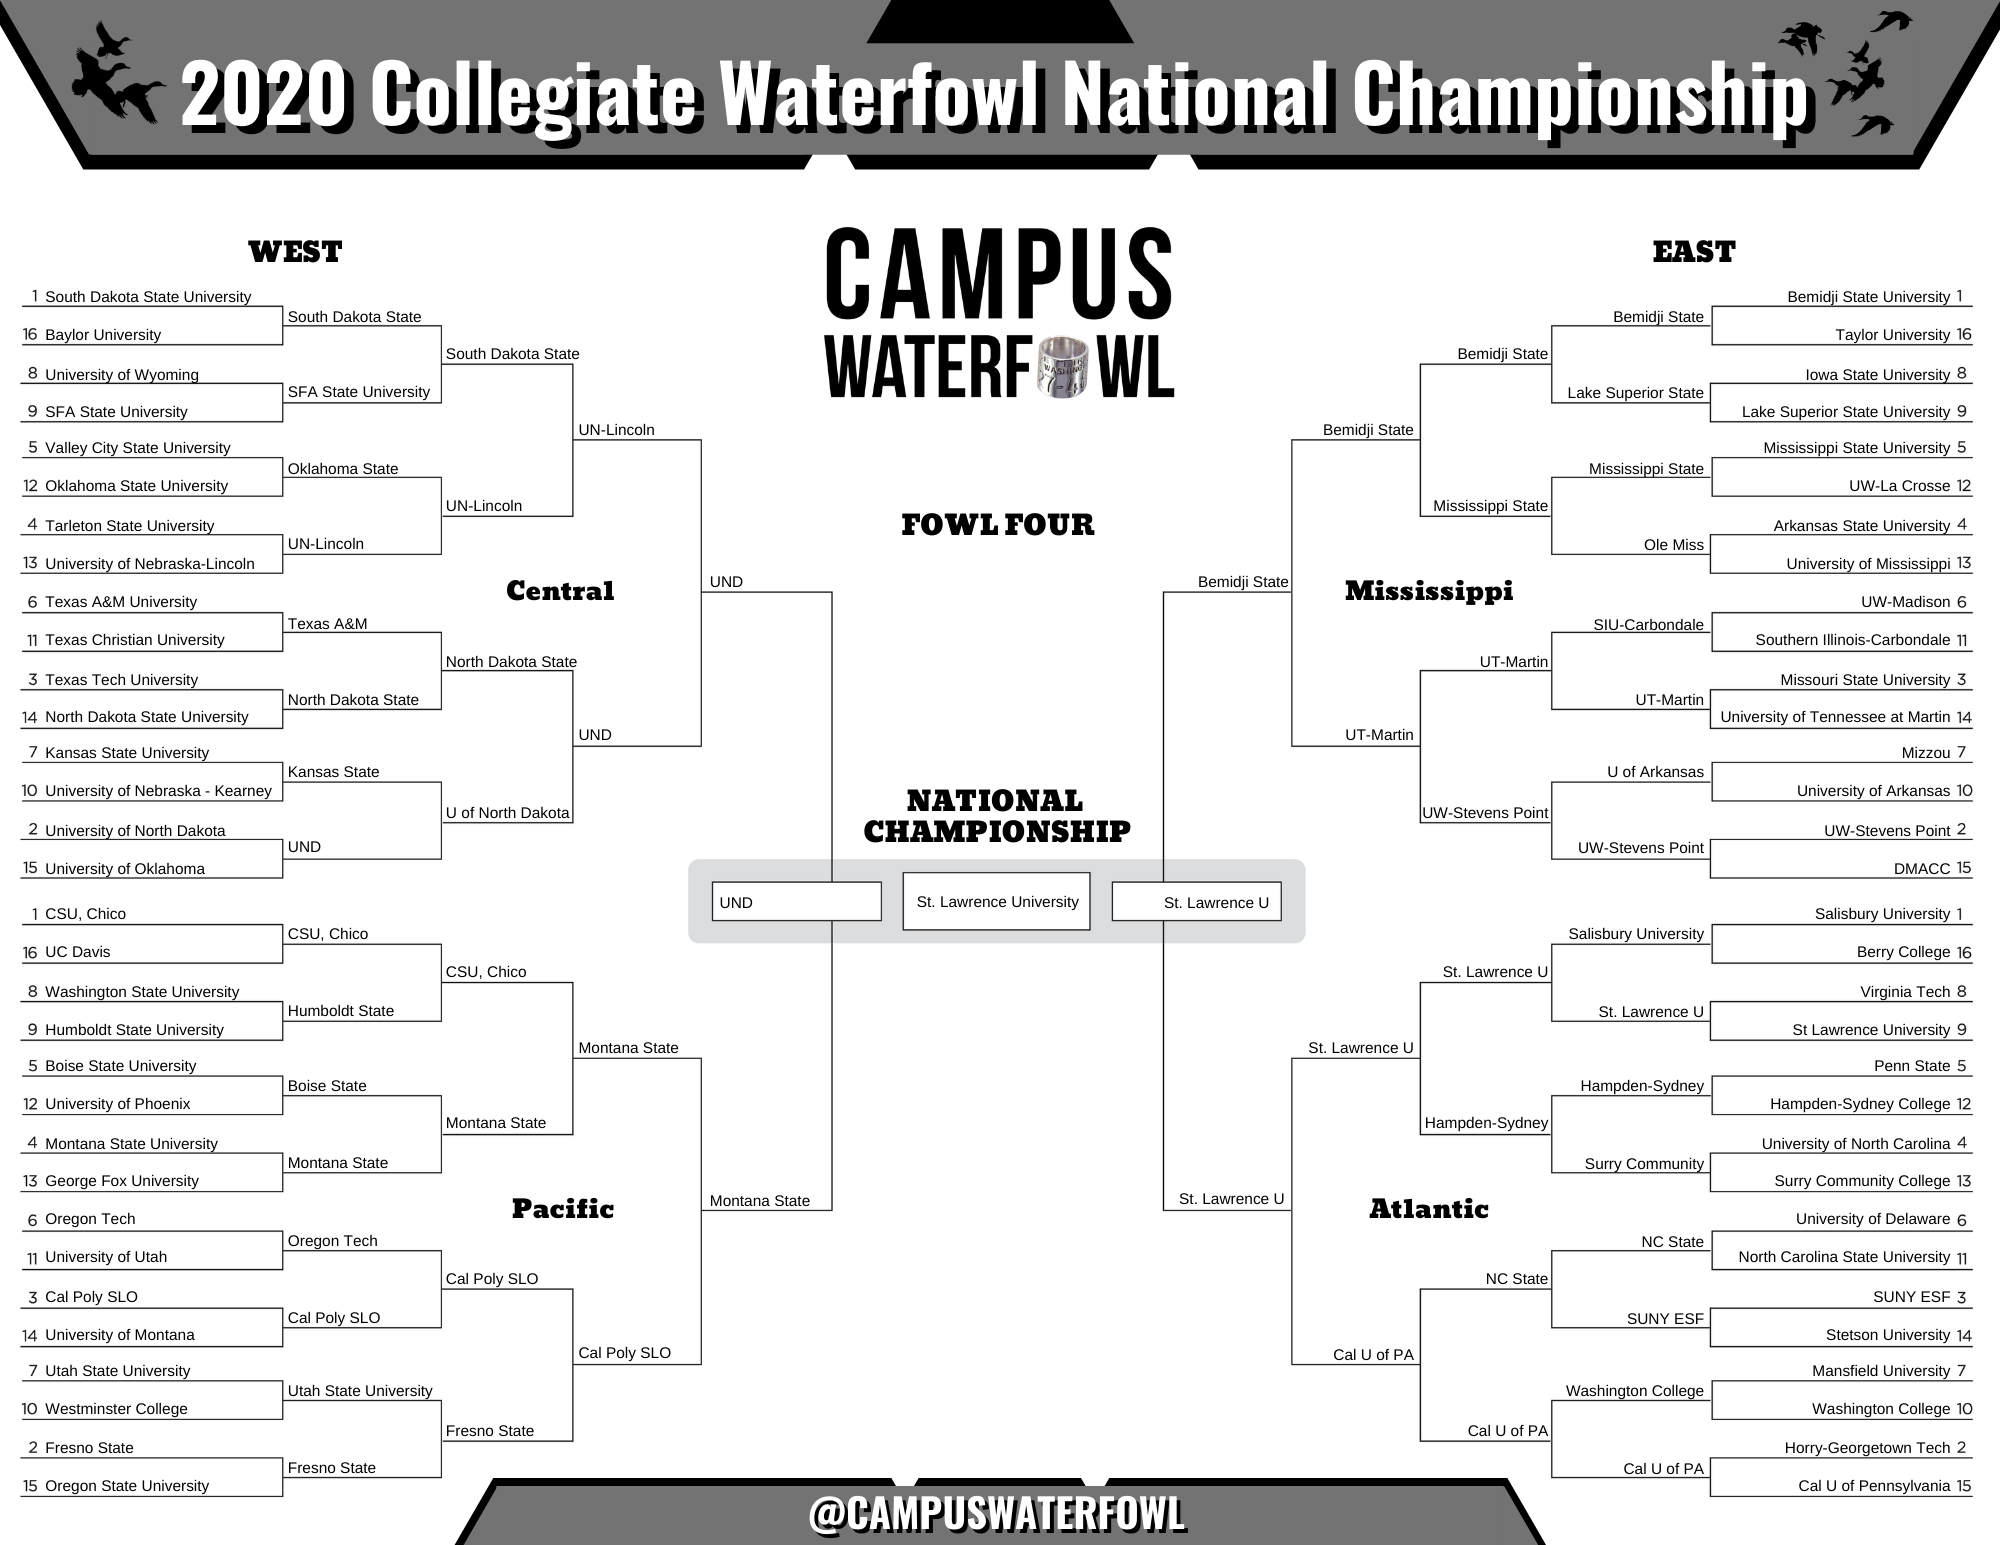 2020 Collegiate Waterfowl National Championship